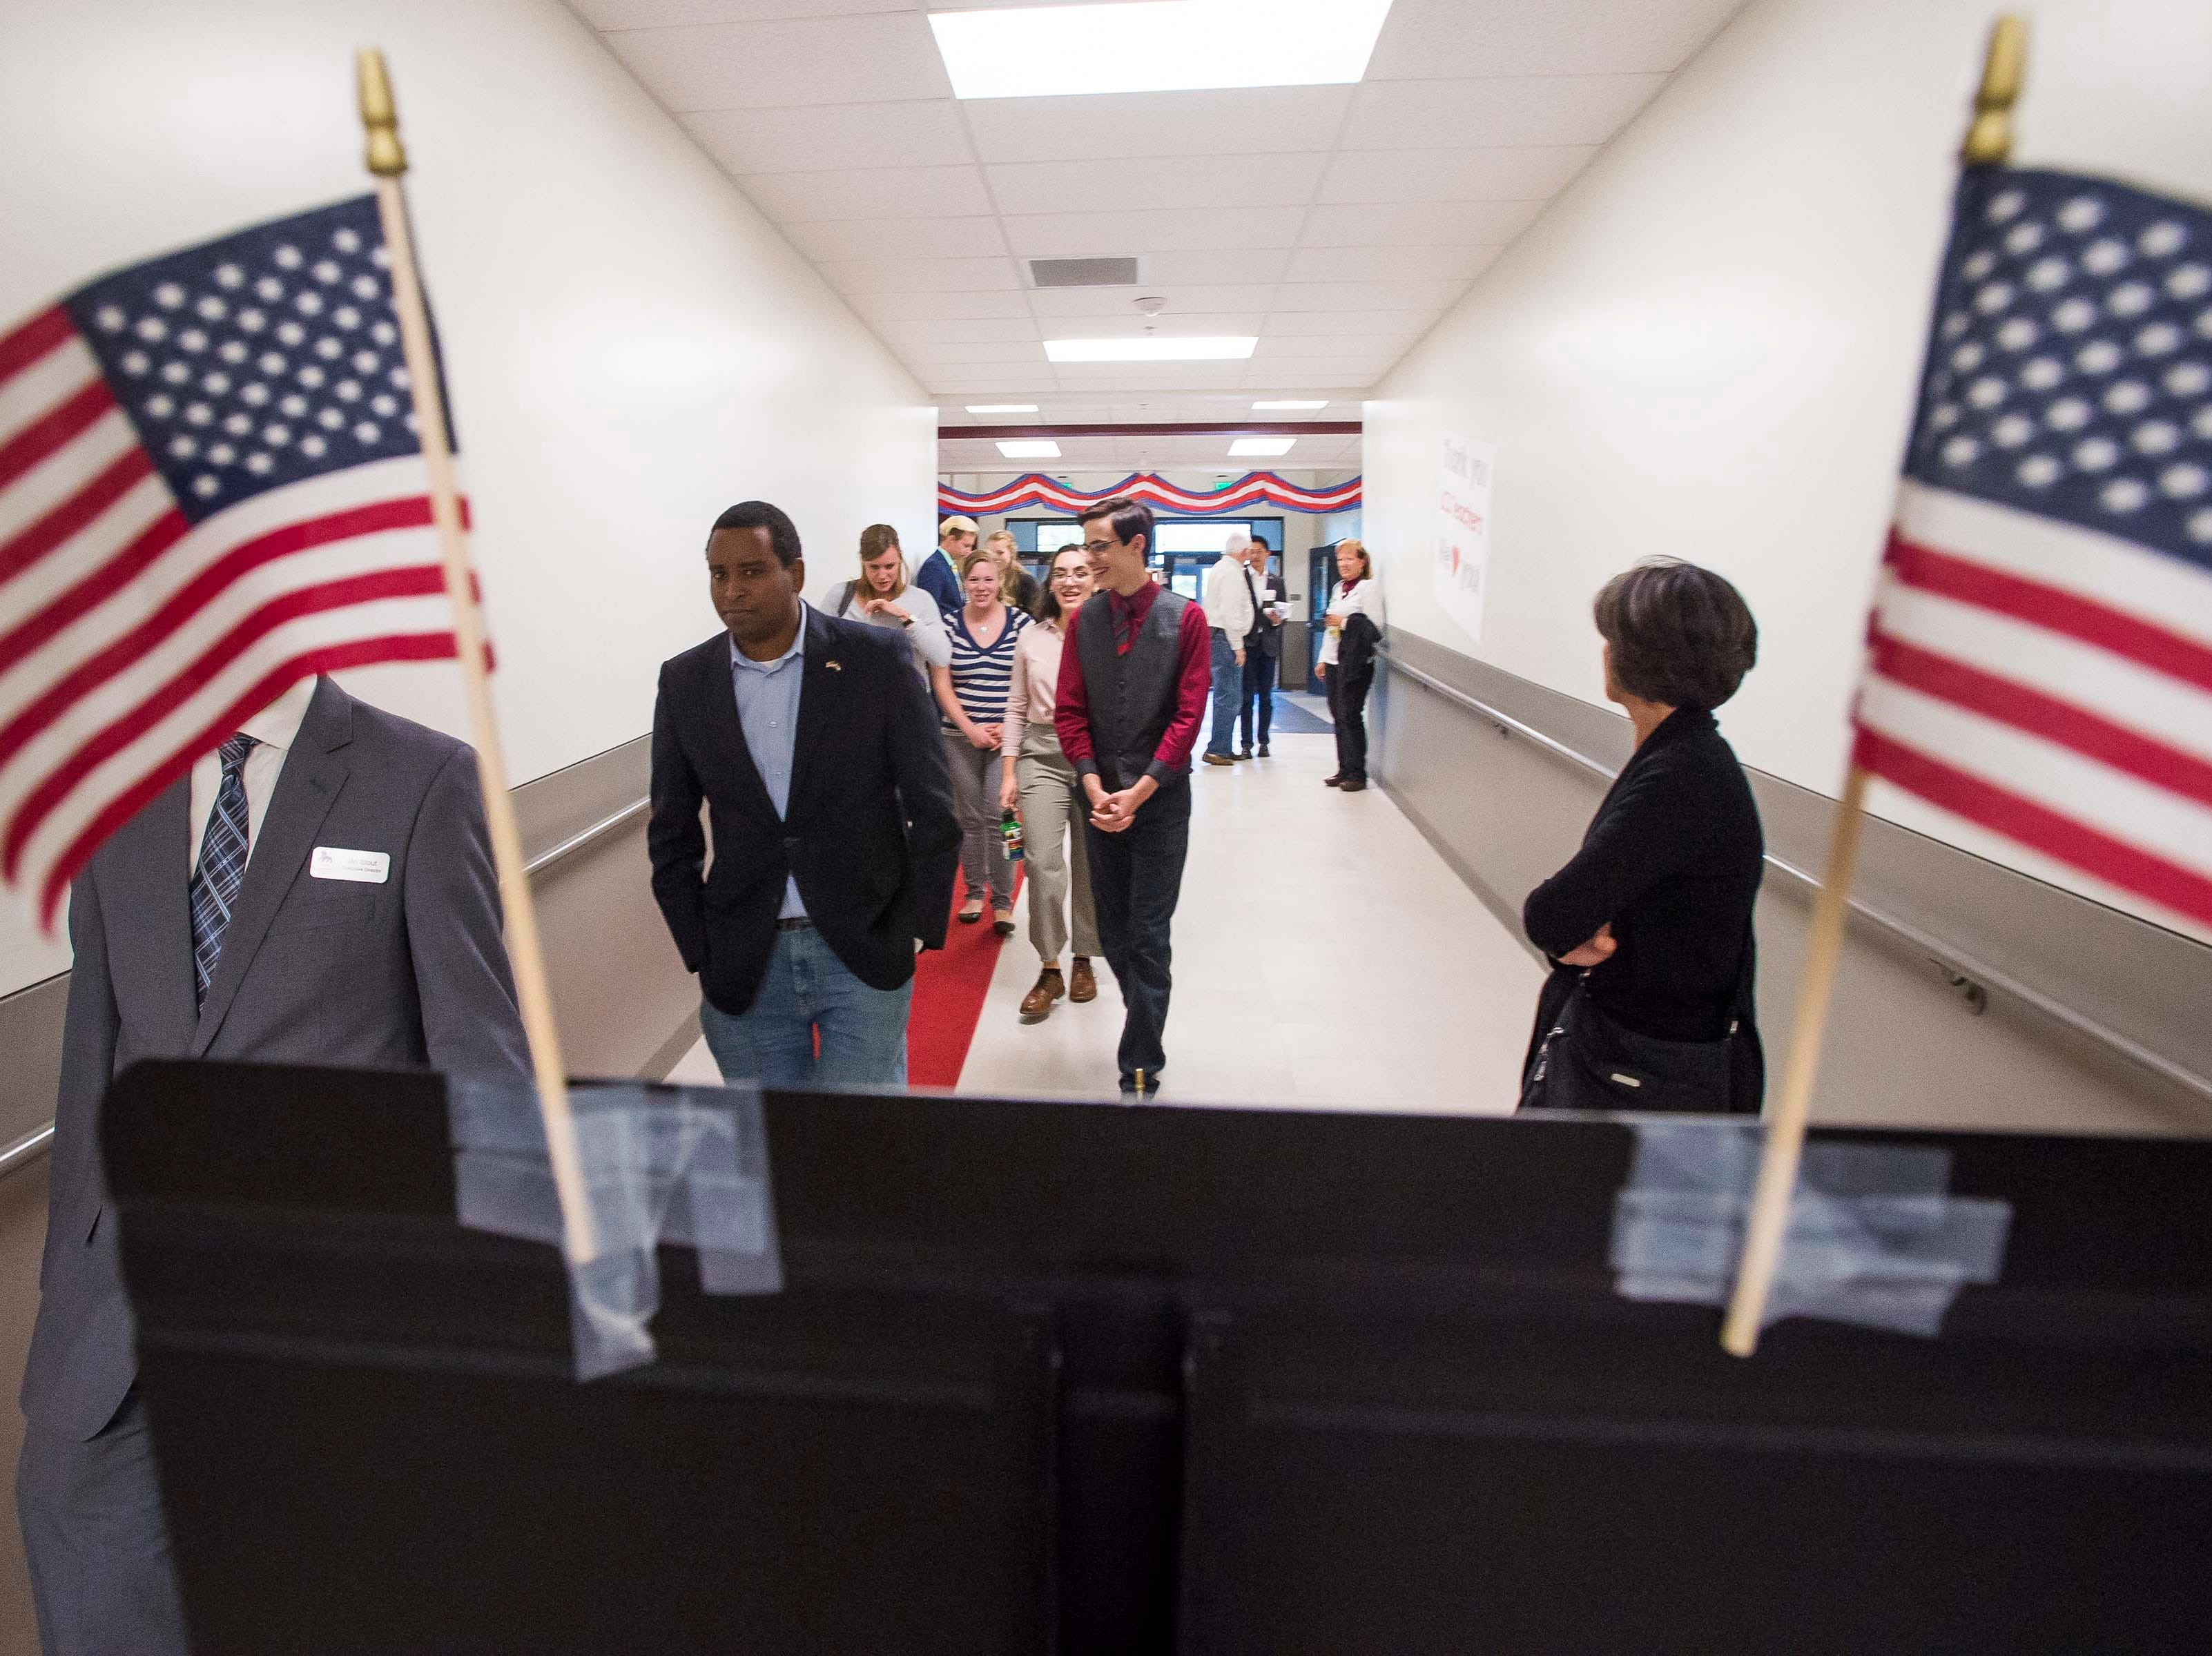 Colorado's 2nd Congressional District Democratic nominee Joe Neguse walks down a hallway on his way to a debate with Republican nominee Peter Yu on Wednesday, Sept. 26, 2018, at the Loveland Classical Schools in Loveland, Colo.